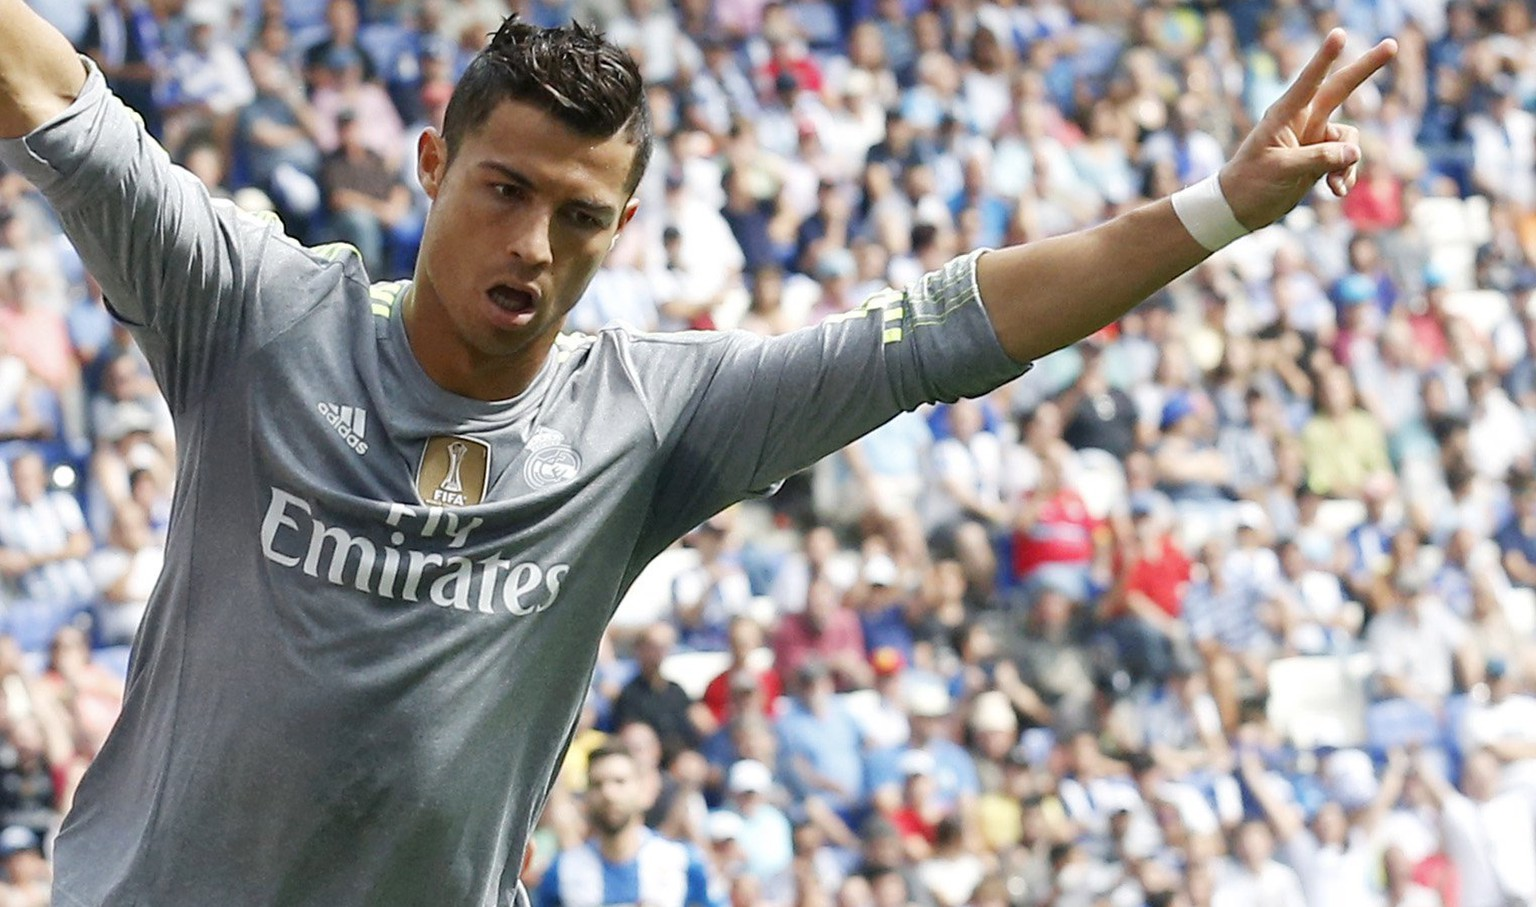 Real Madrid's Cristiano Ronaldo celebrates a goal against Espanyol during their Spanish first division soccer match in Cornella de Llobregat, near Barcelona, Spain, September 12, 2015. REUTERS/Albert Gea